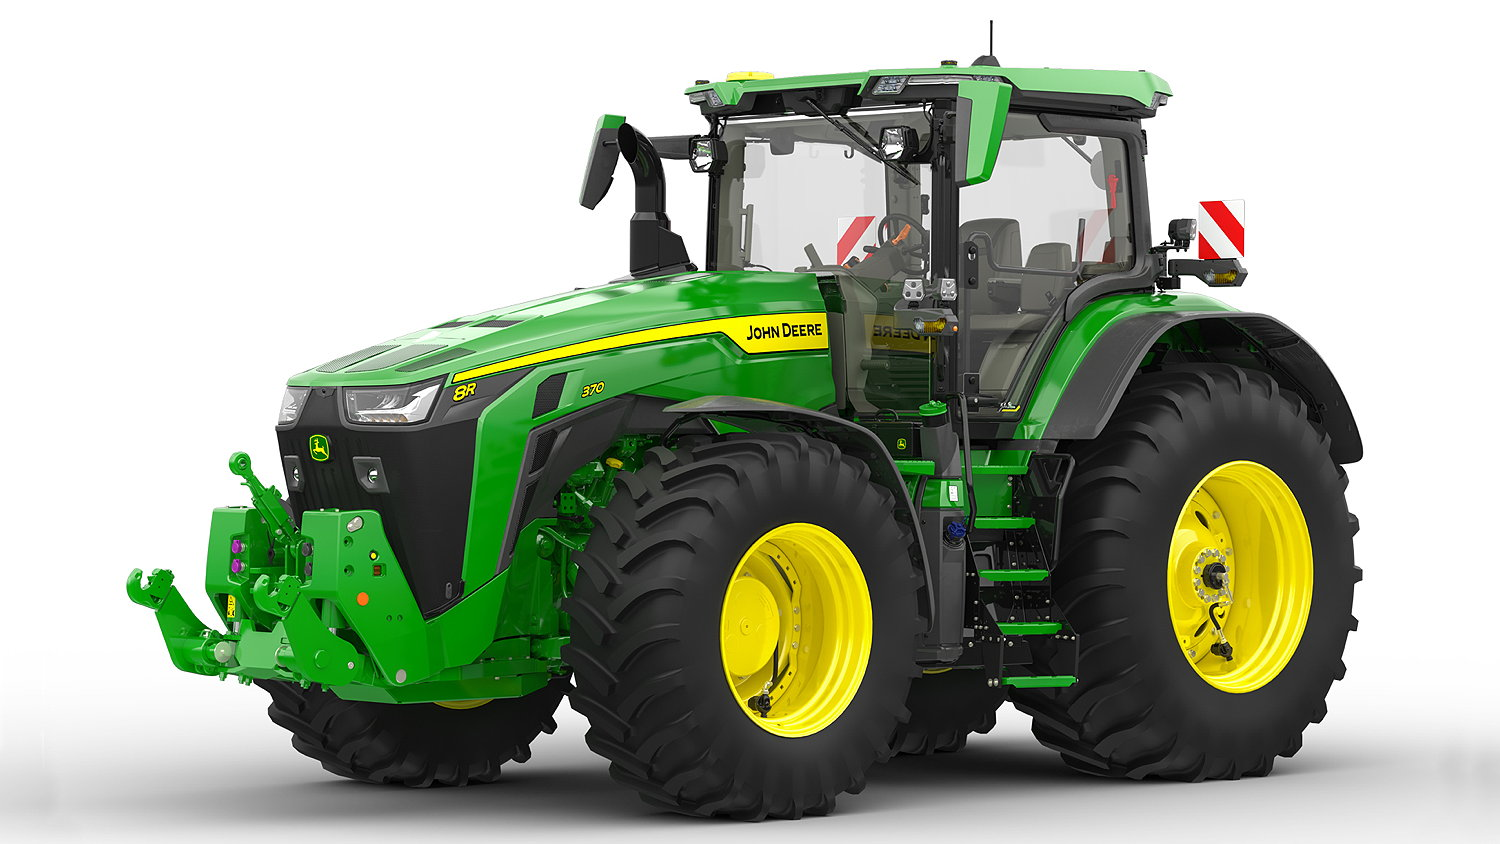 John Deere has launched a fully integrated tyre pressure control system for its 8R Series tractors